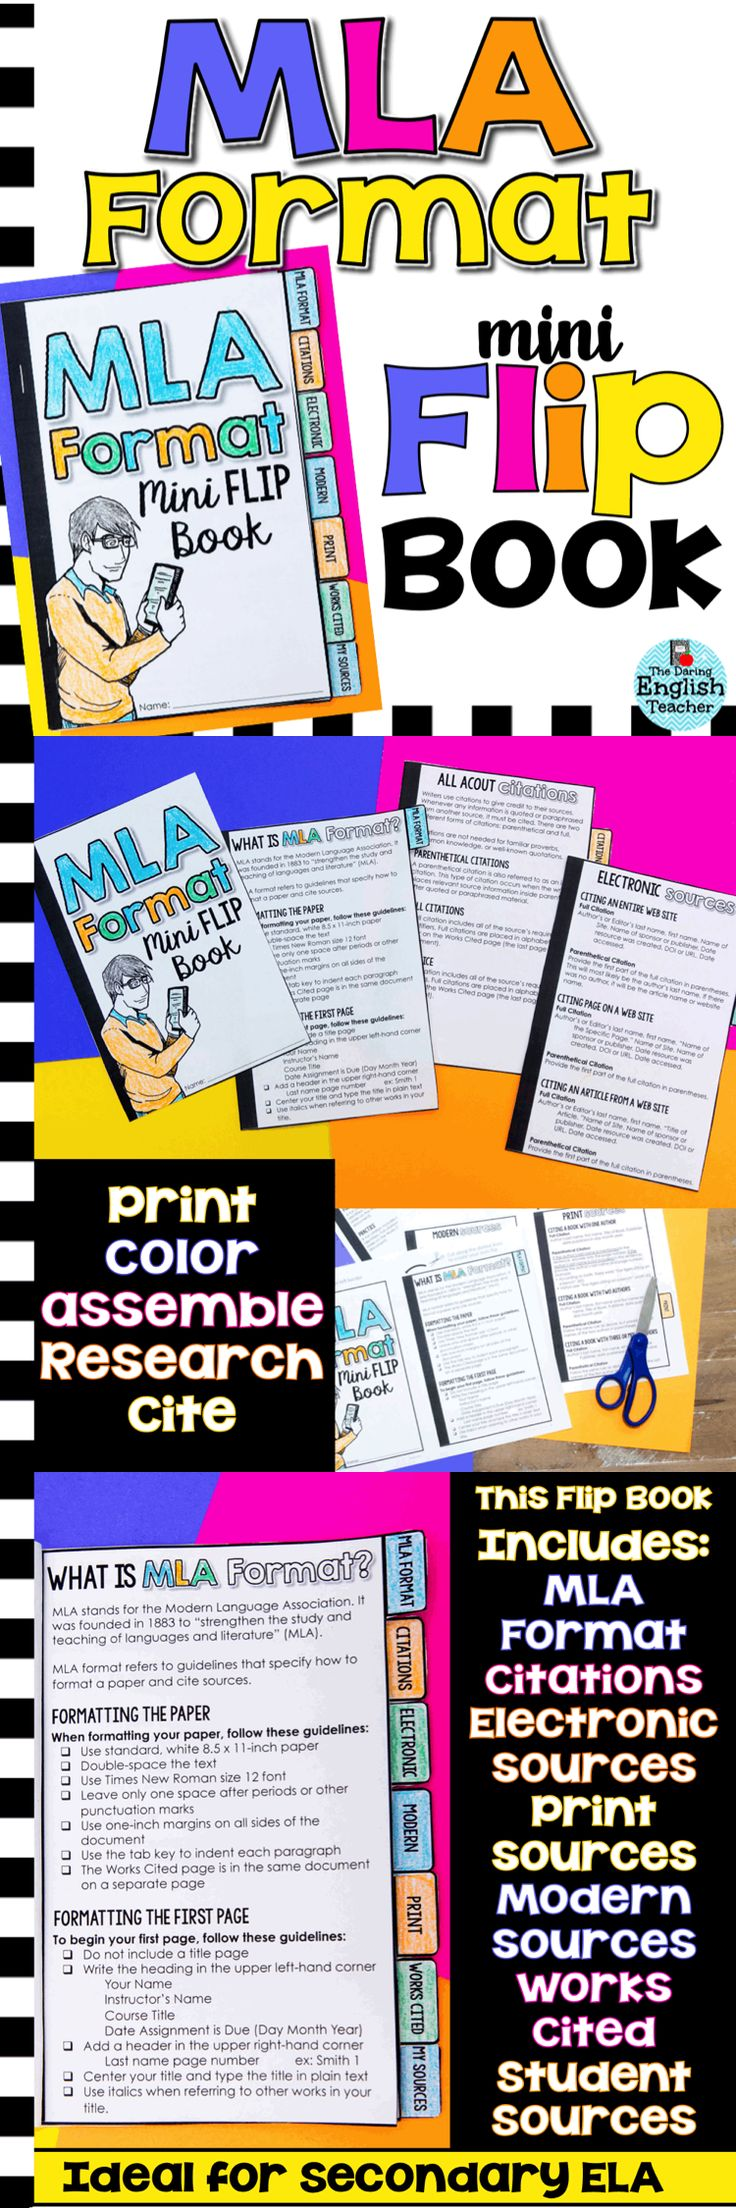 8th edition MLA Format Mini Flip Book for secondary students. Help your students format their papers and cite their sources with this MLA Style guide!